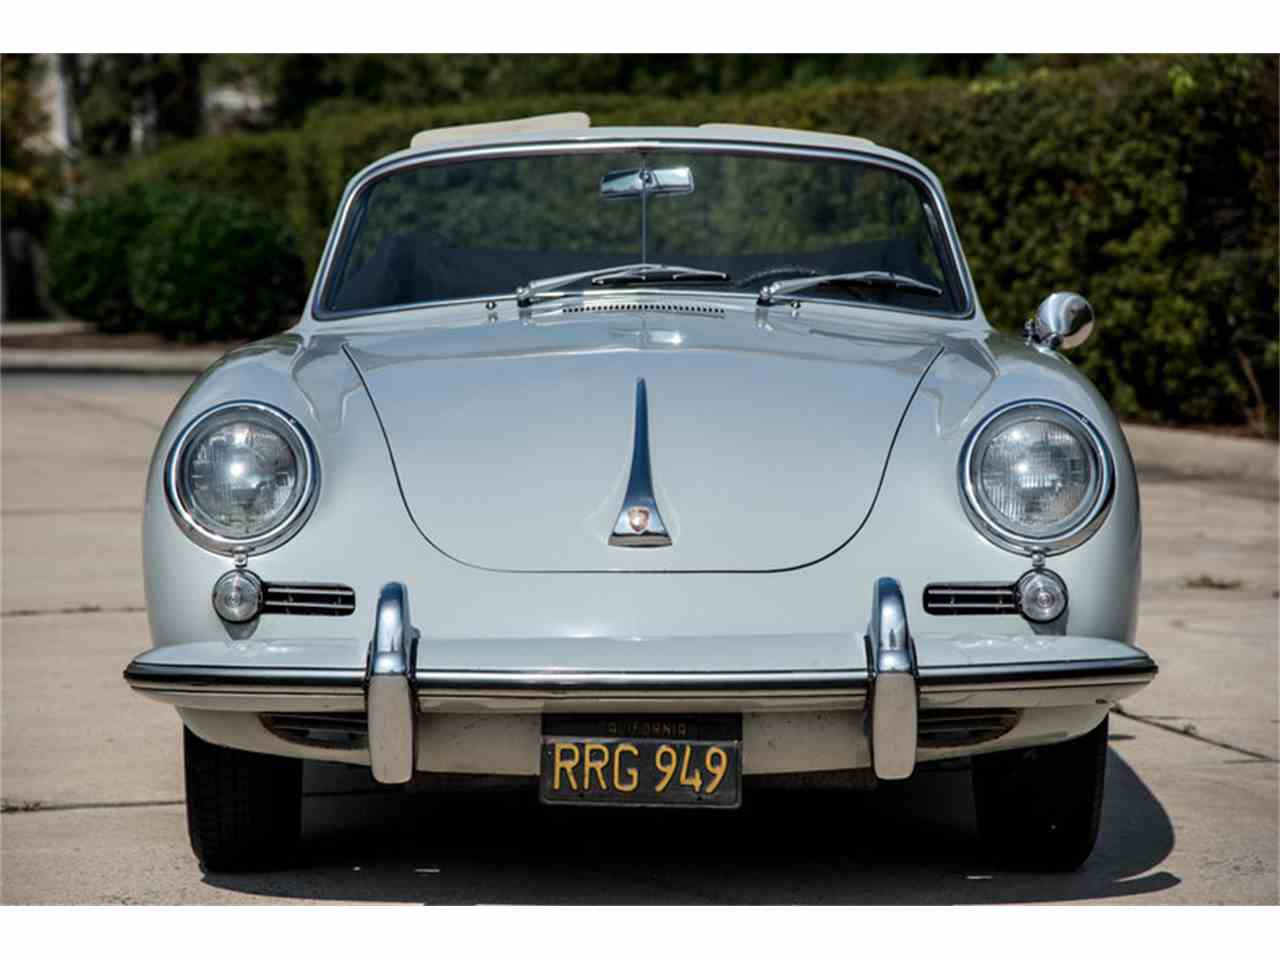 Large Picture of 1965 Porsche 356C - $224,800.00 - IWJW